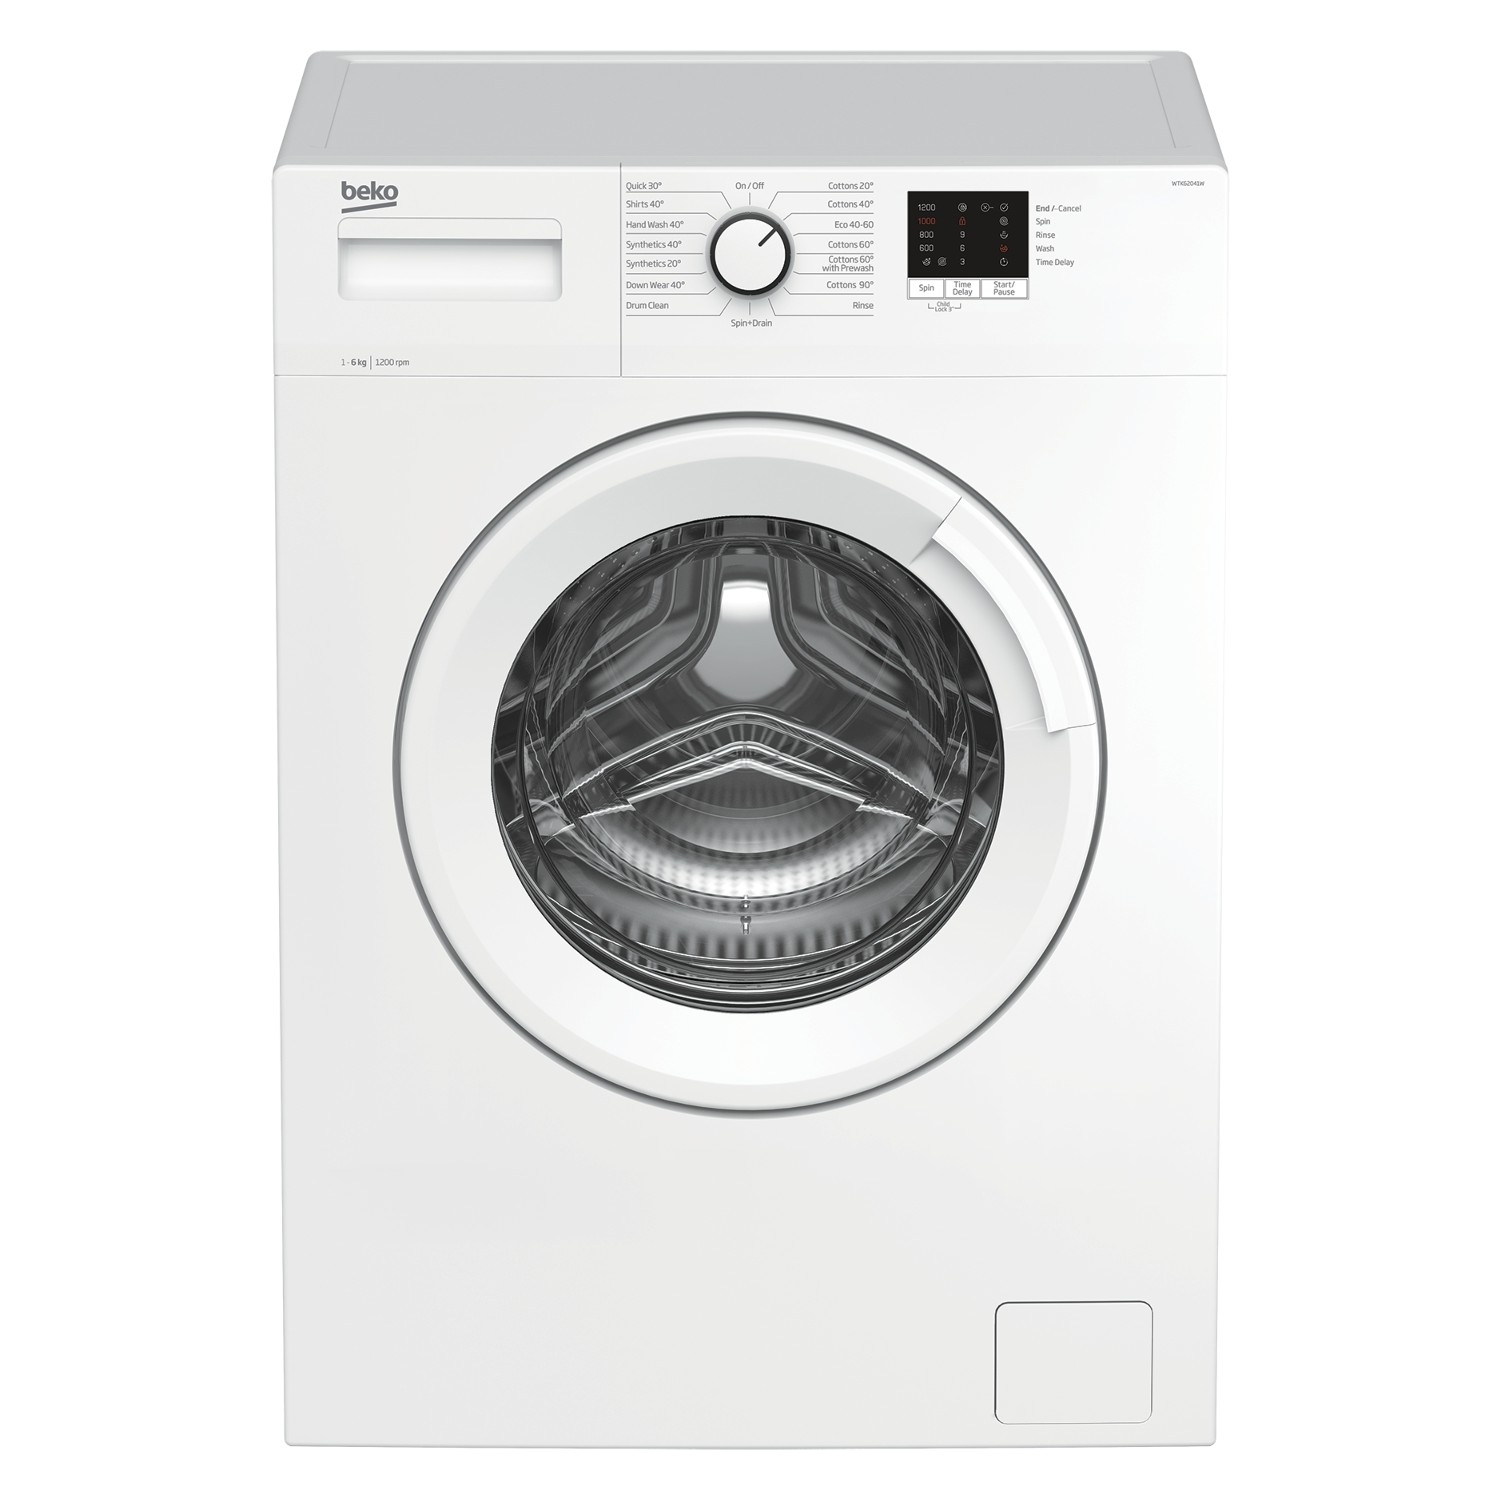 Beko WTK62041W 6kg 1200 Spin Washing Machine with Quick Programme - White - 0